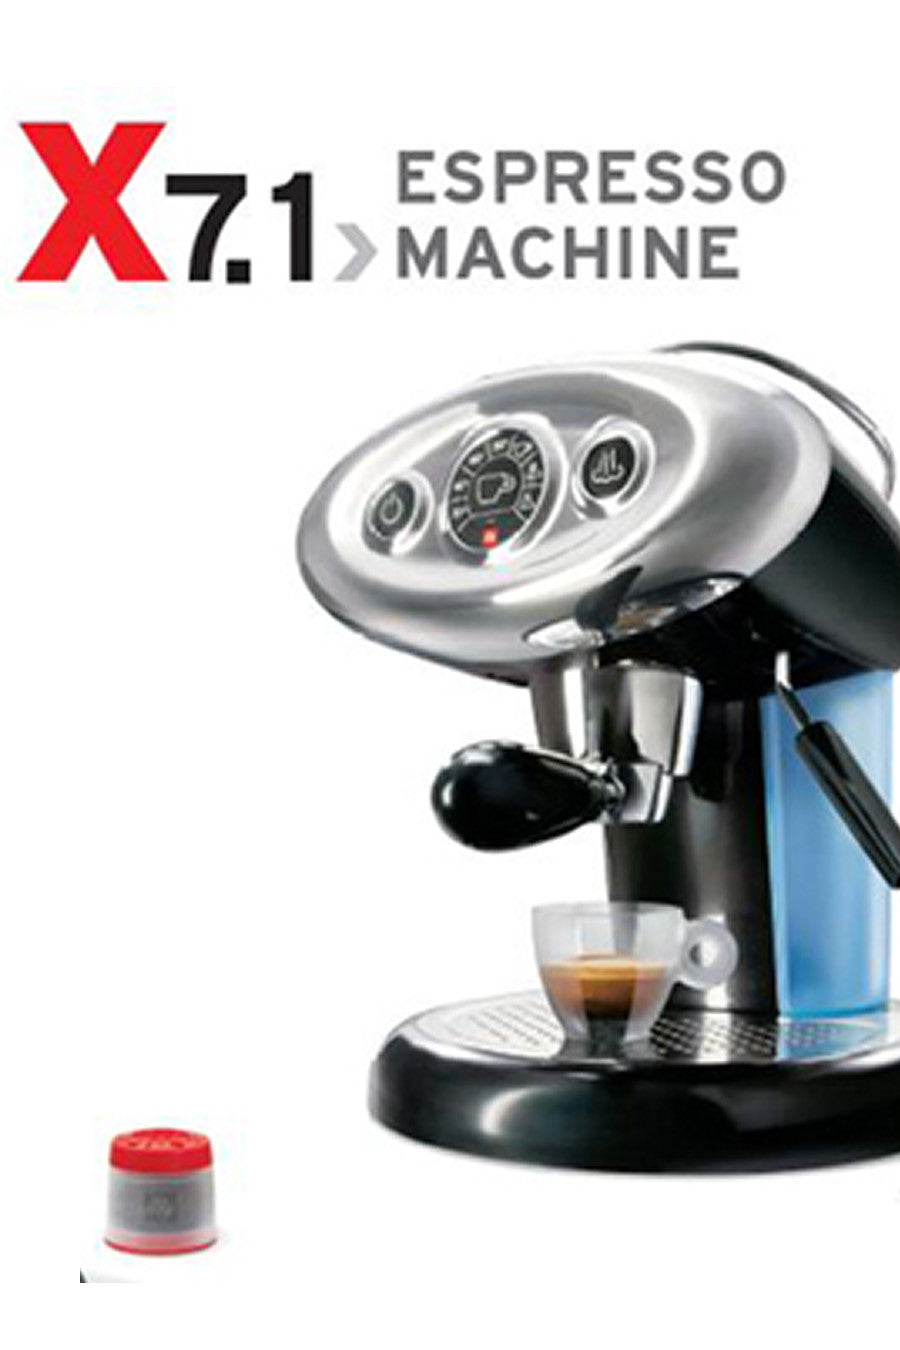 Illy Francis Francis X7.1 – McCullagh Coffee Roasters